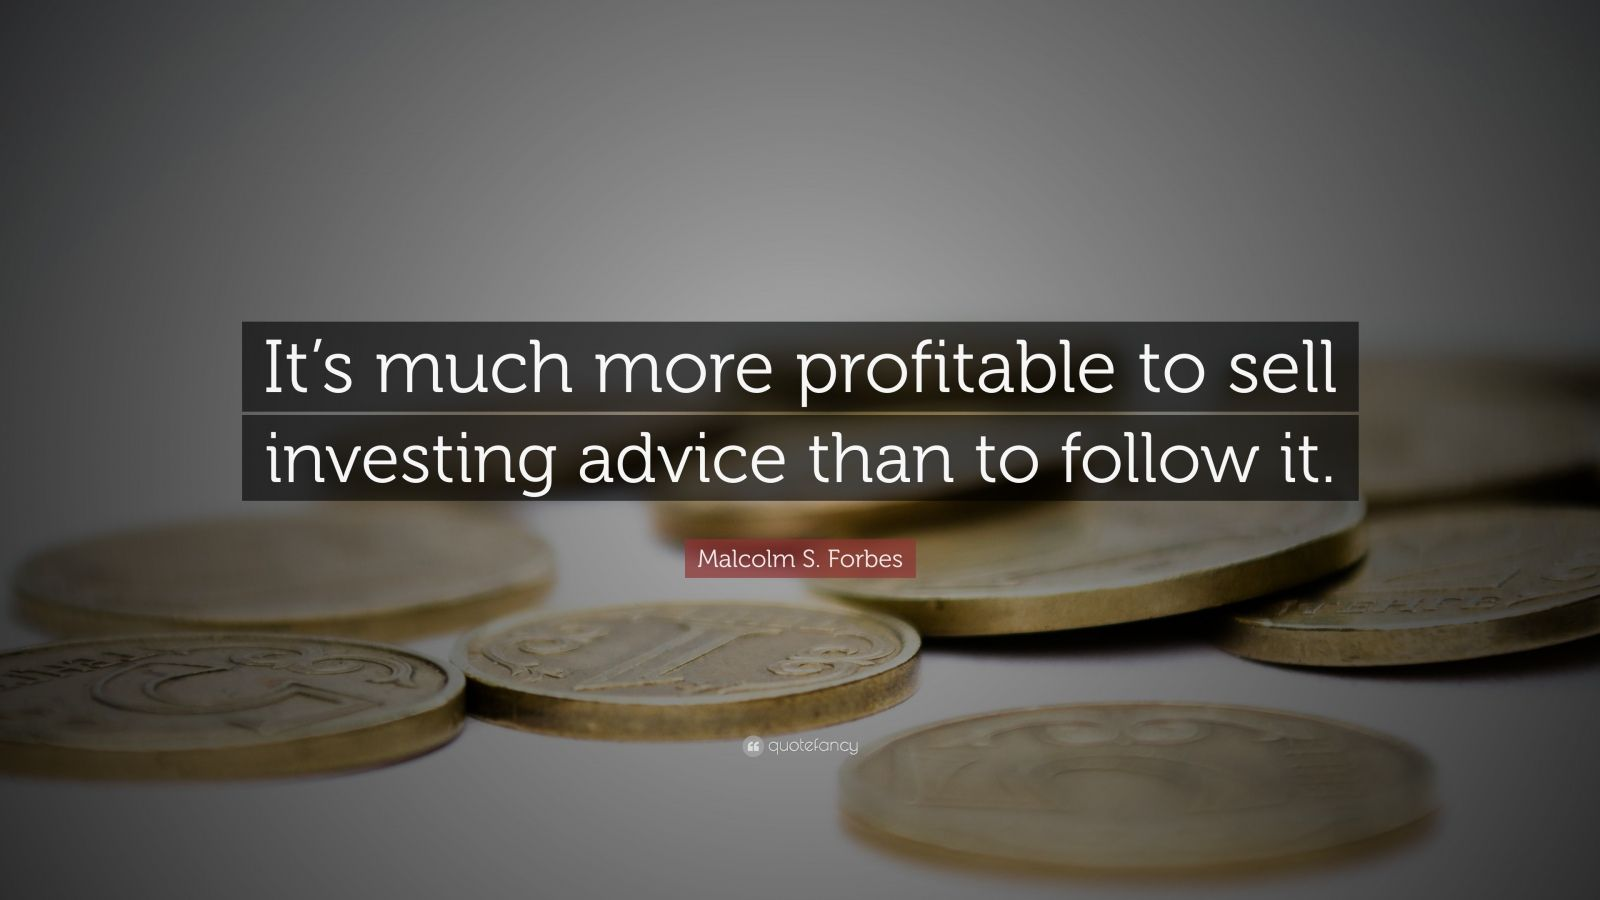 """Malcolm S. Forbes Quote: """"It's much more profitable to sell investing advice than to follow it."""""""